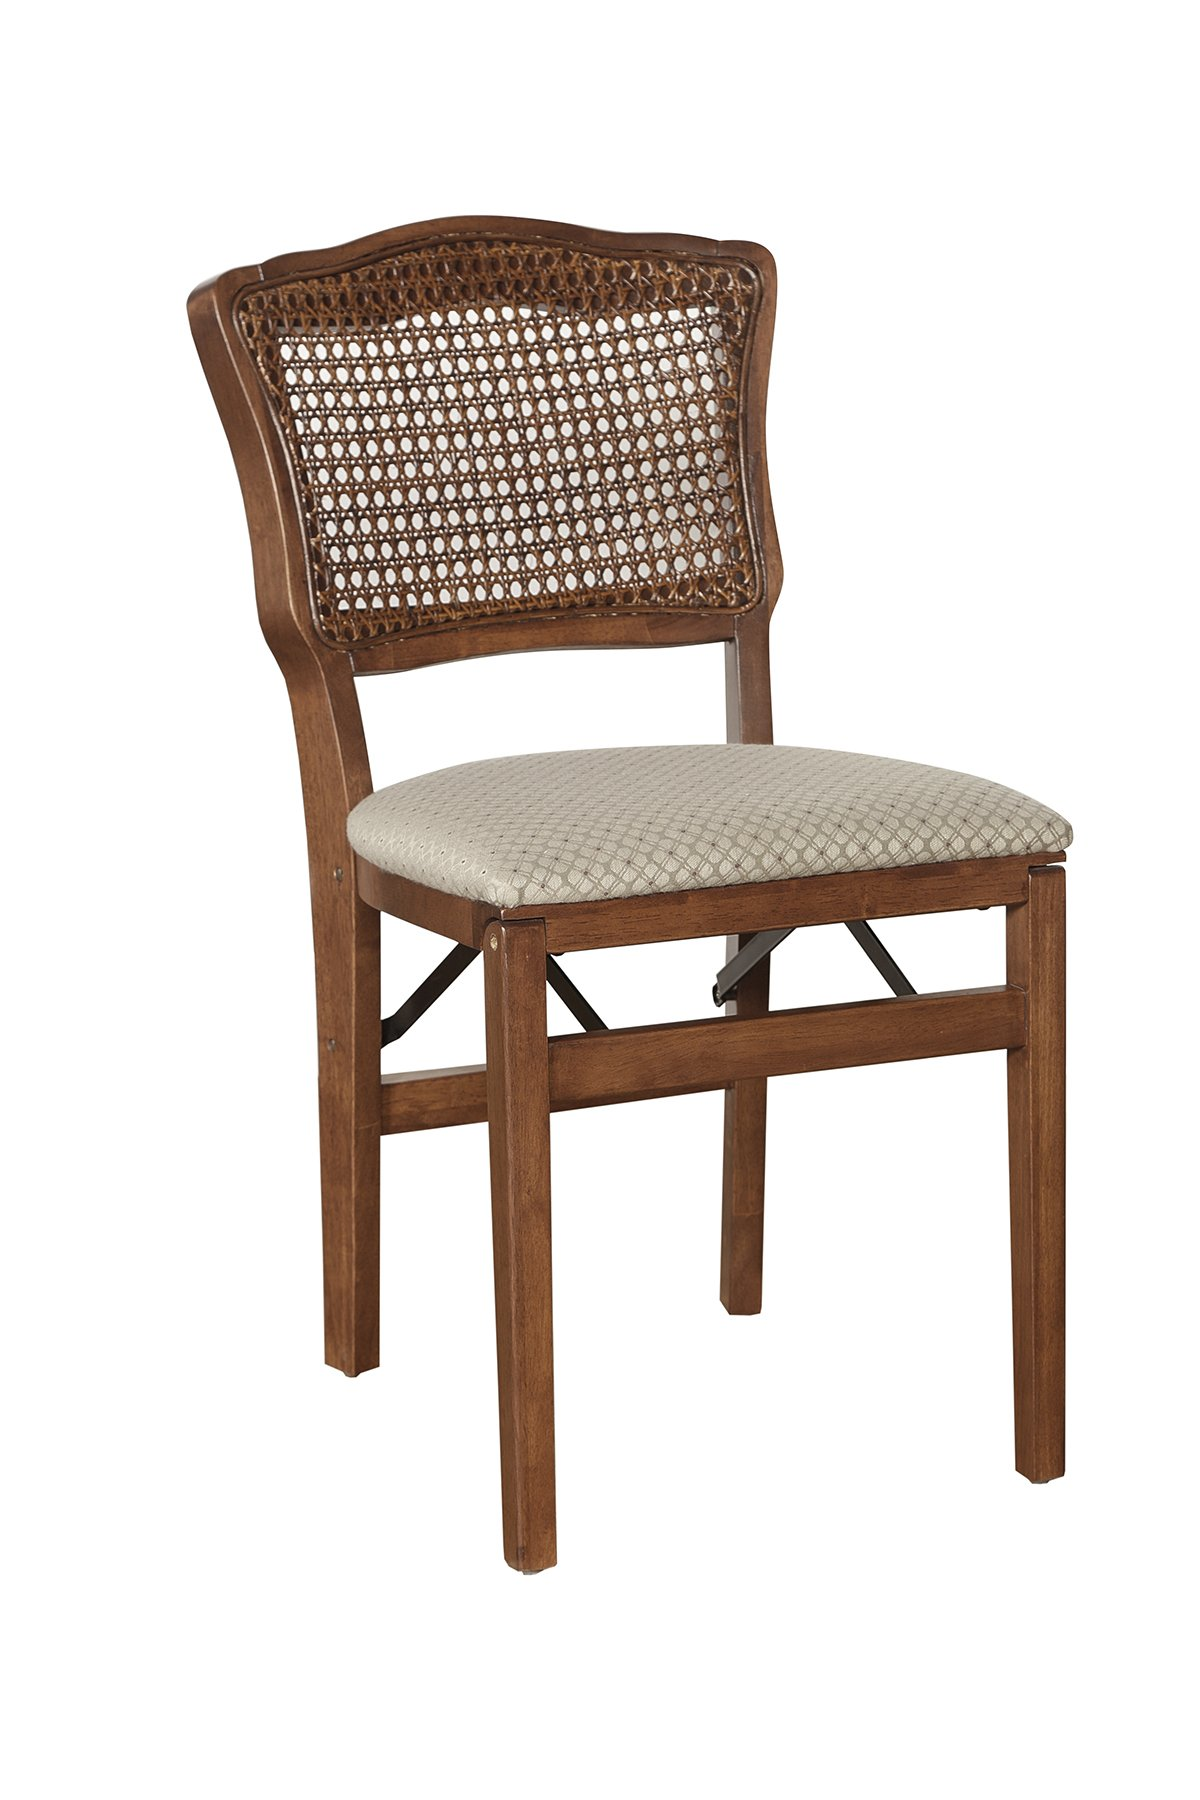 Stakmore French Cane Back Folding Chair Finish, Set of 2, Fruitwood by MECO